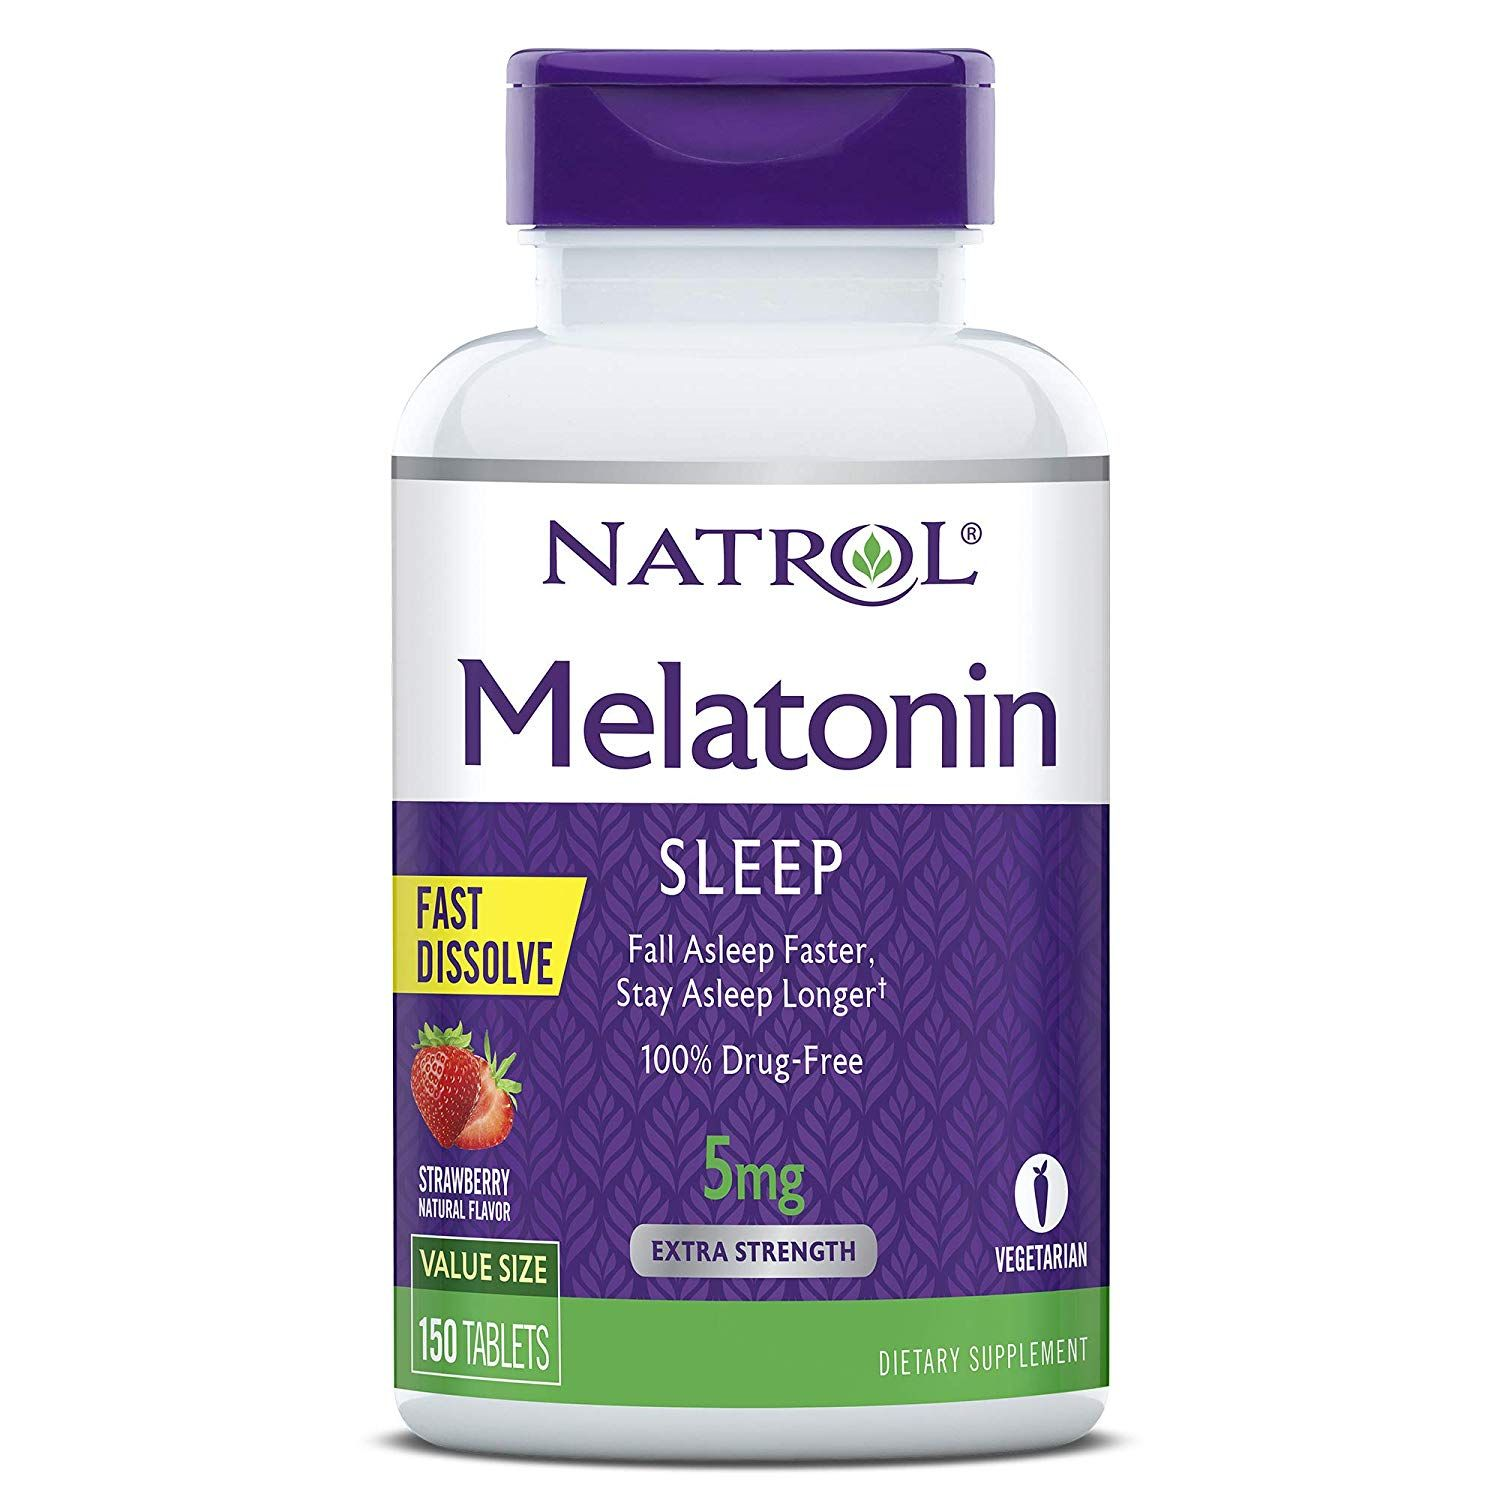 Get the best sleep of your life with these good night